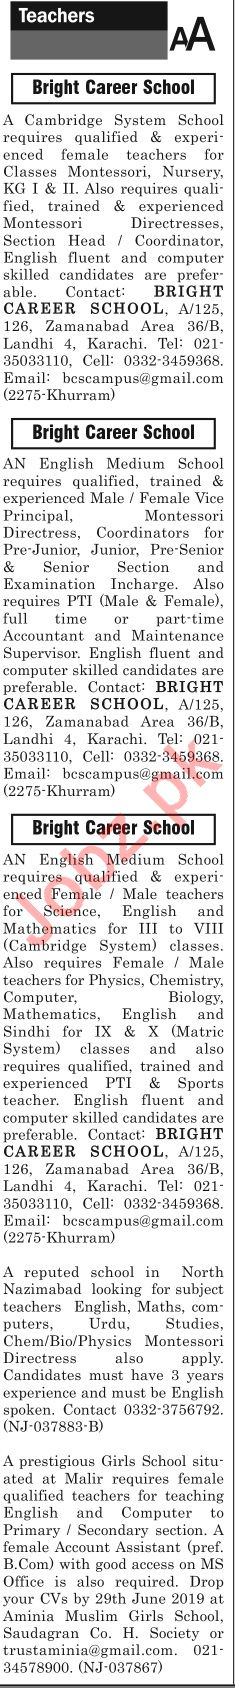 The News Sunday Classified Ads 16th June 2019 for Teachers